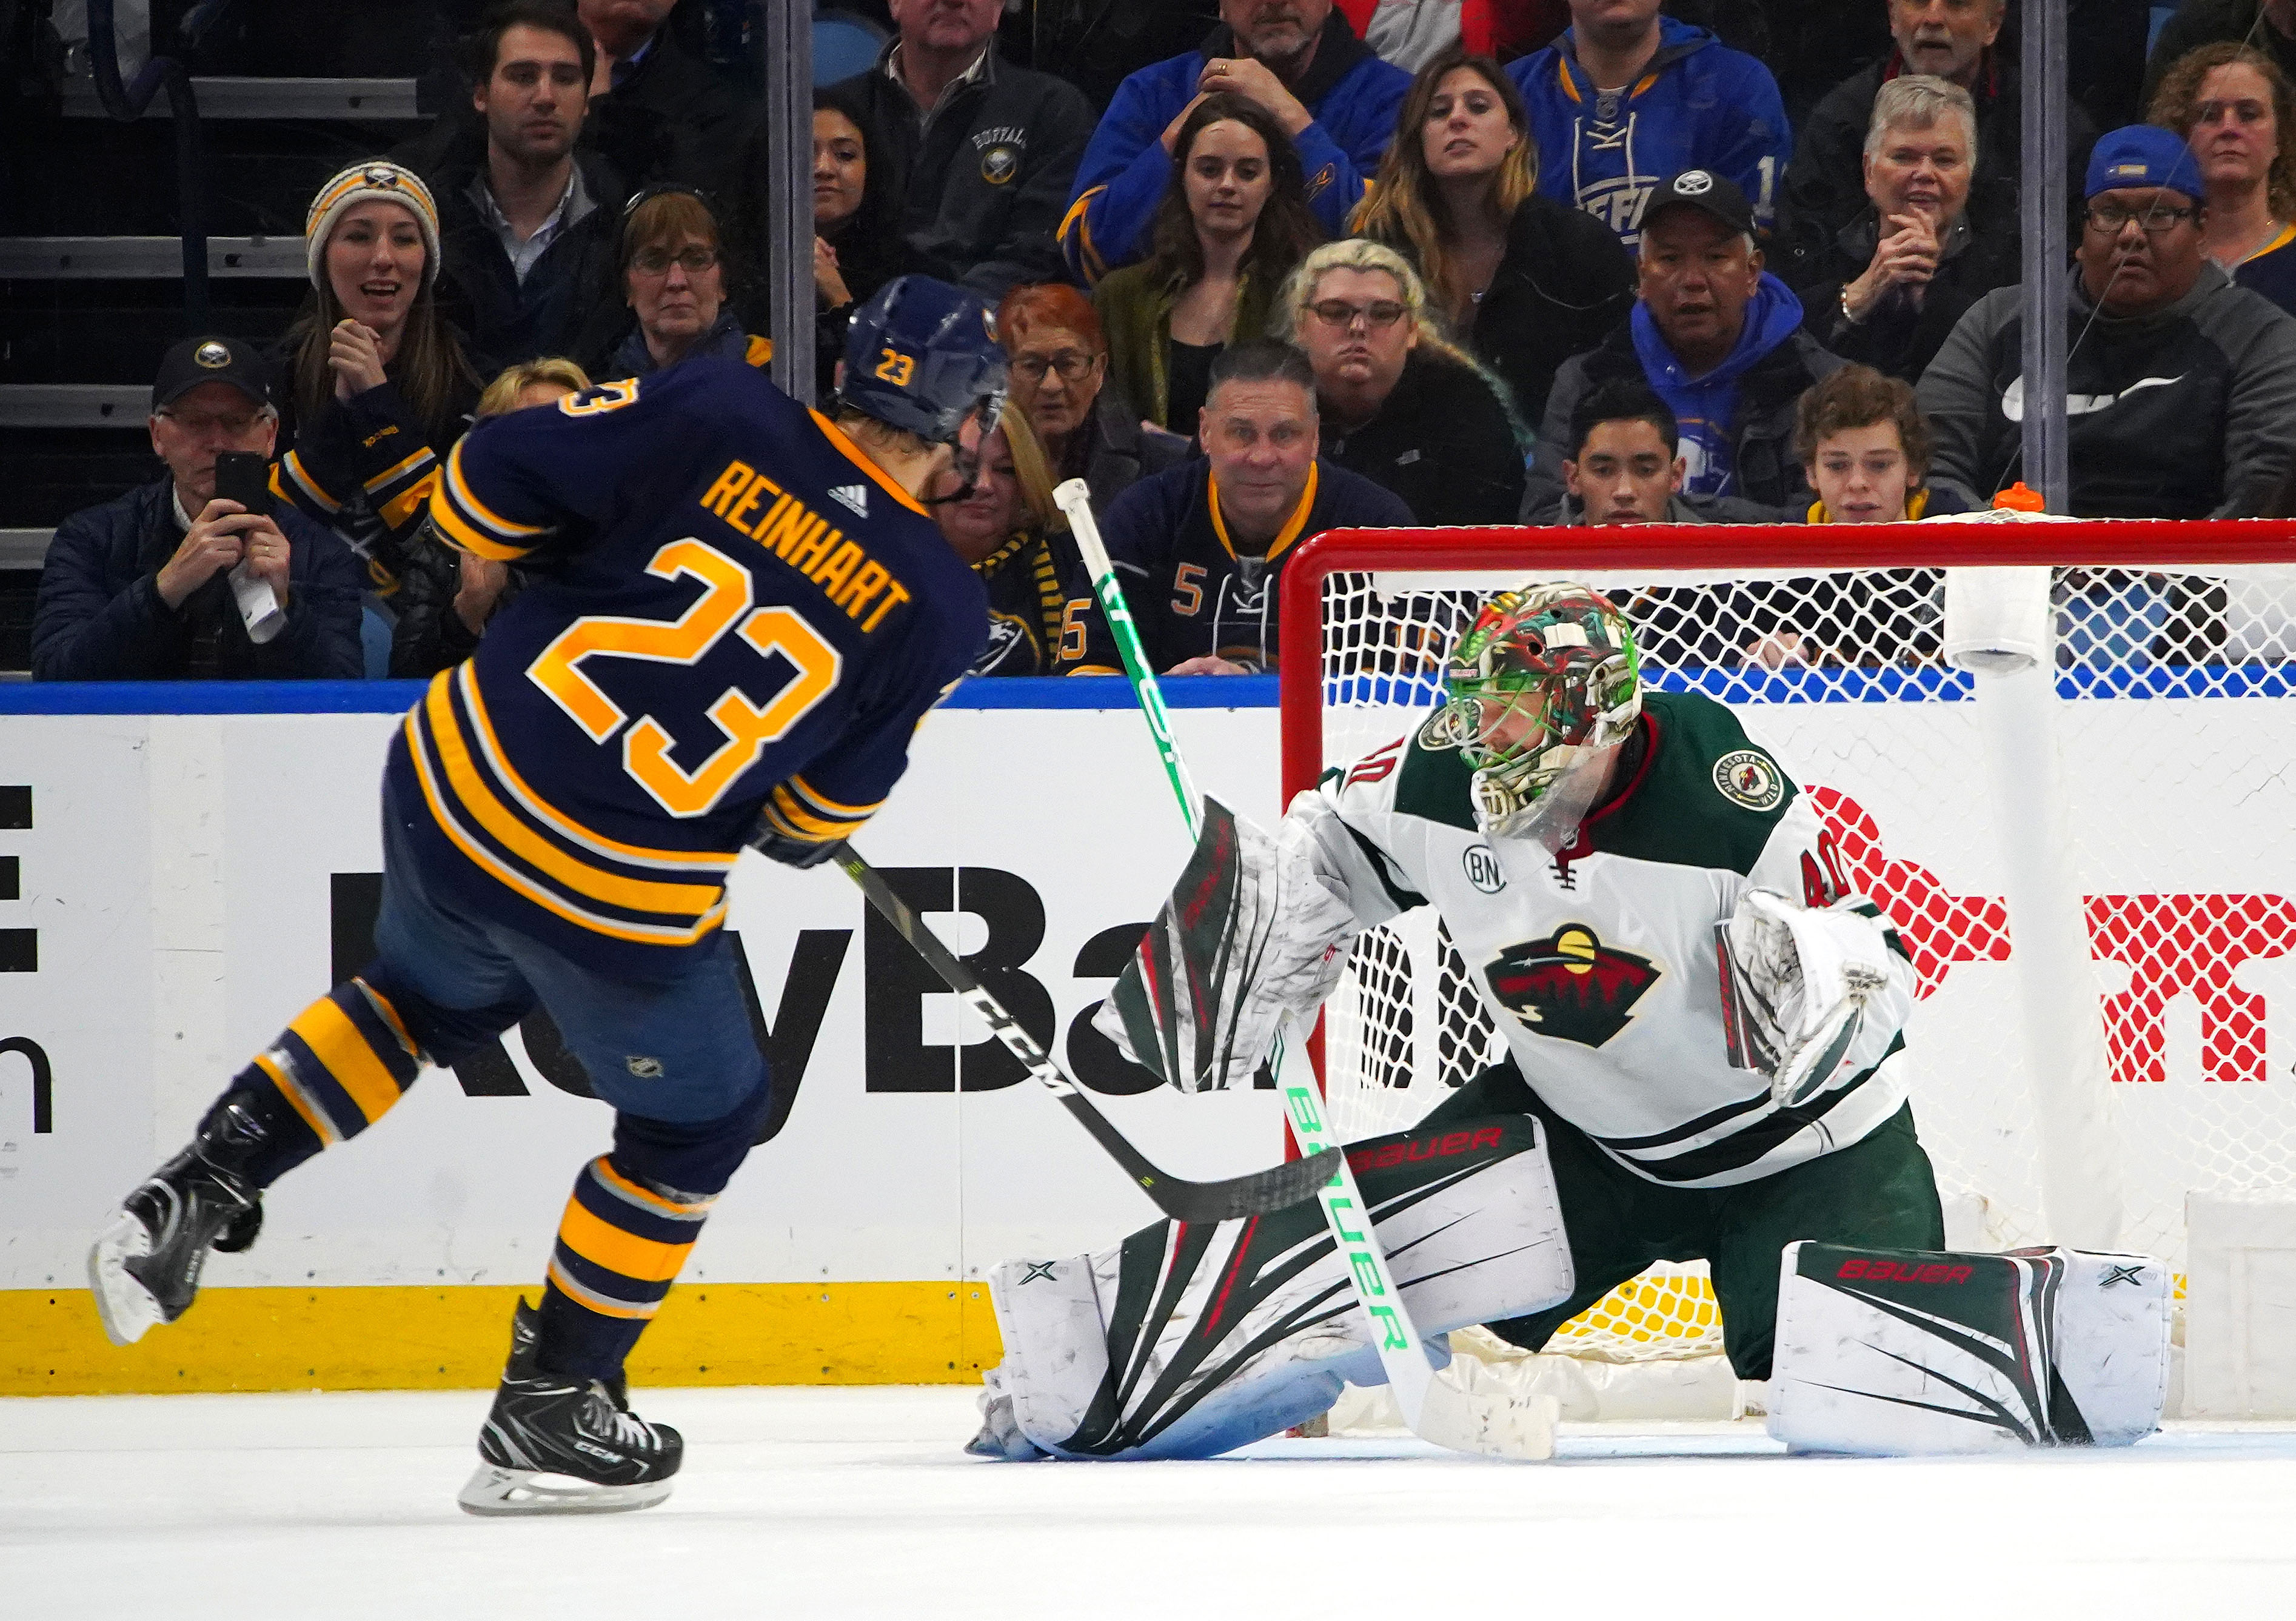 Game Preview: Minnesota Wild vs. Buffalo Sabres 11/19/19 @ 6:00PM CST at KeyBank Center